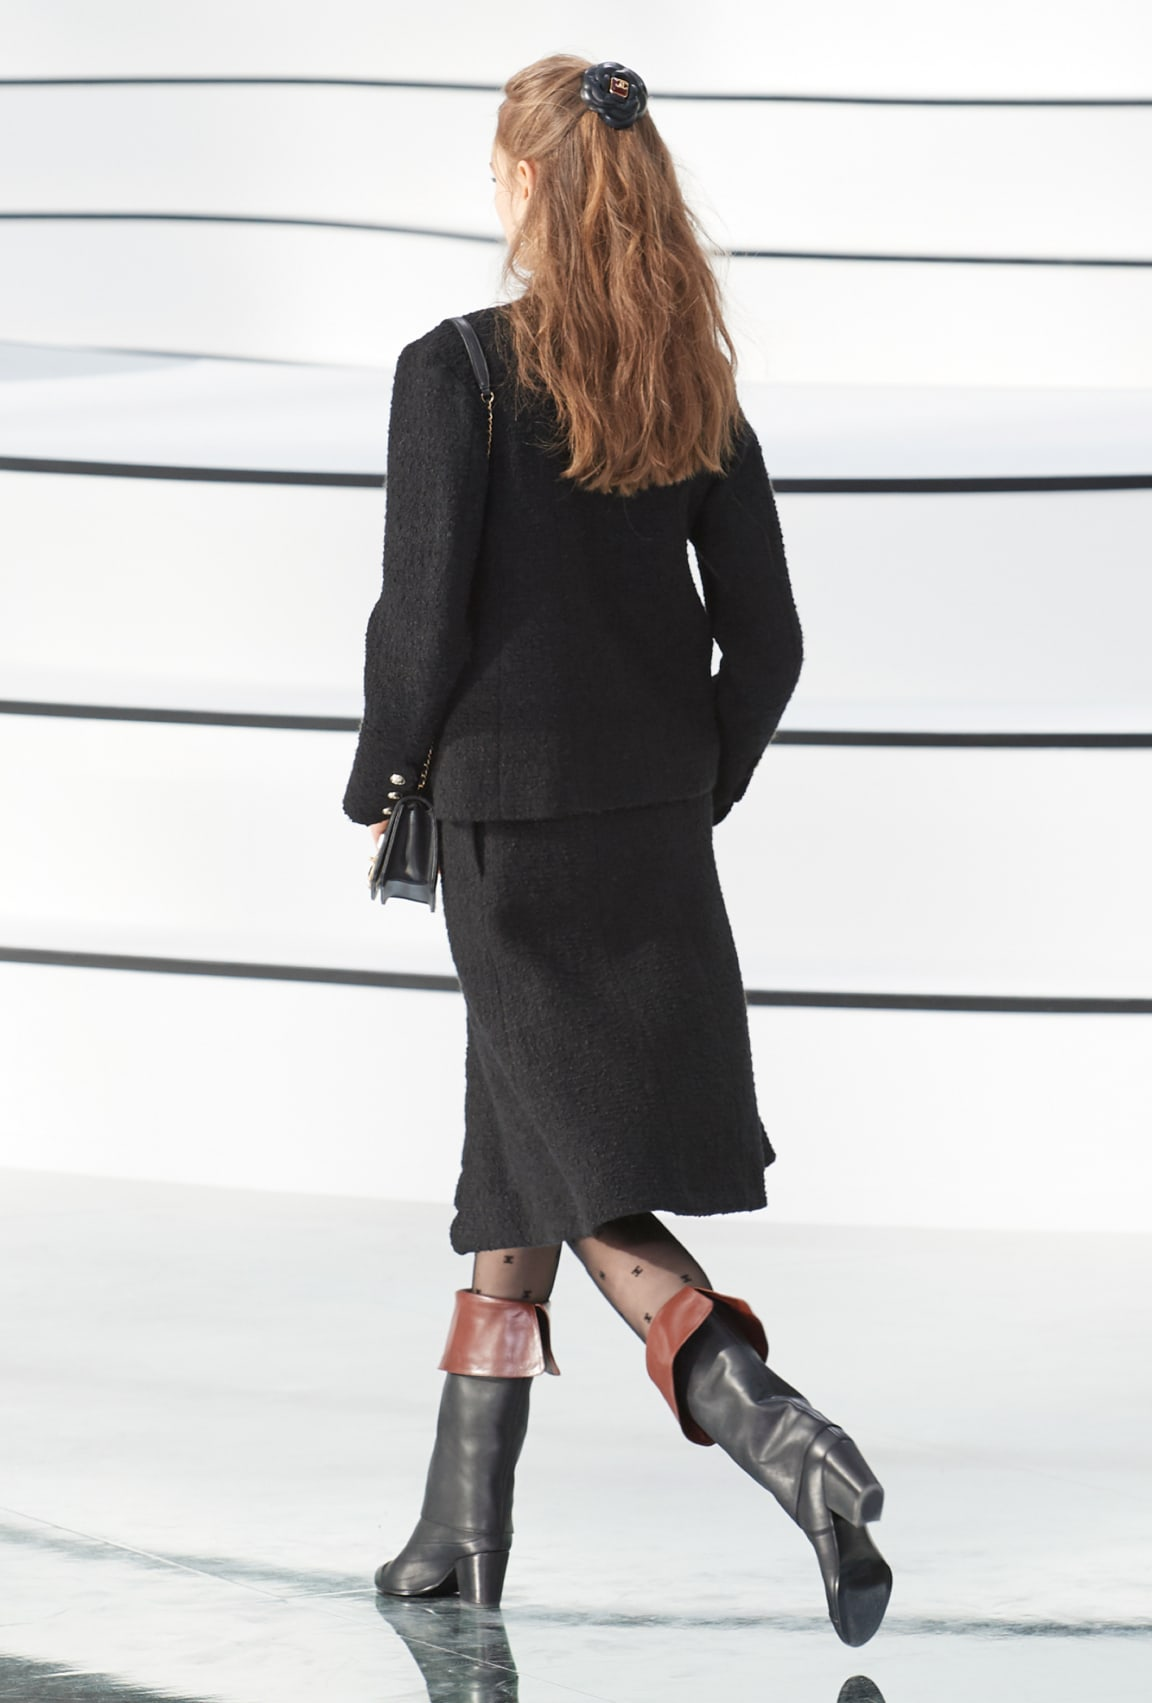 Image 1 - Look  11